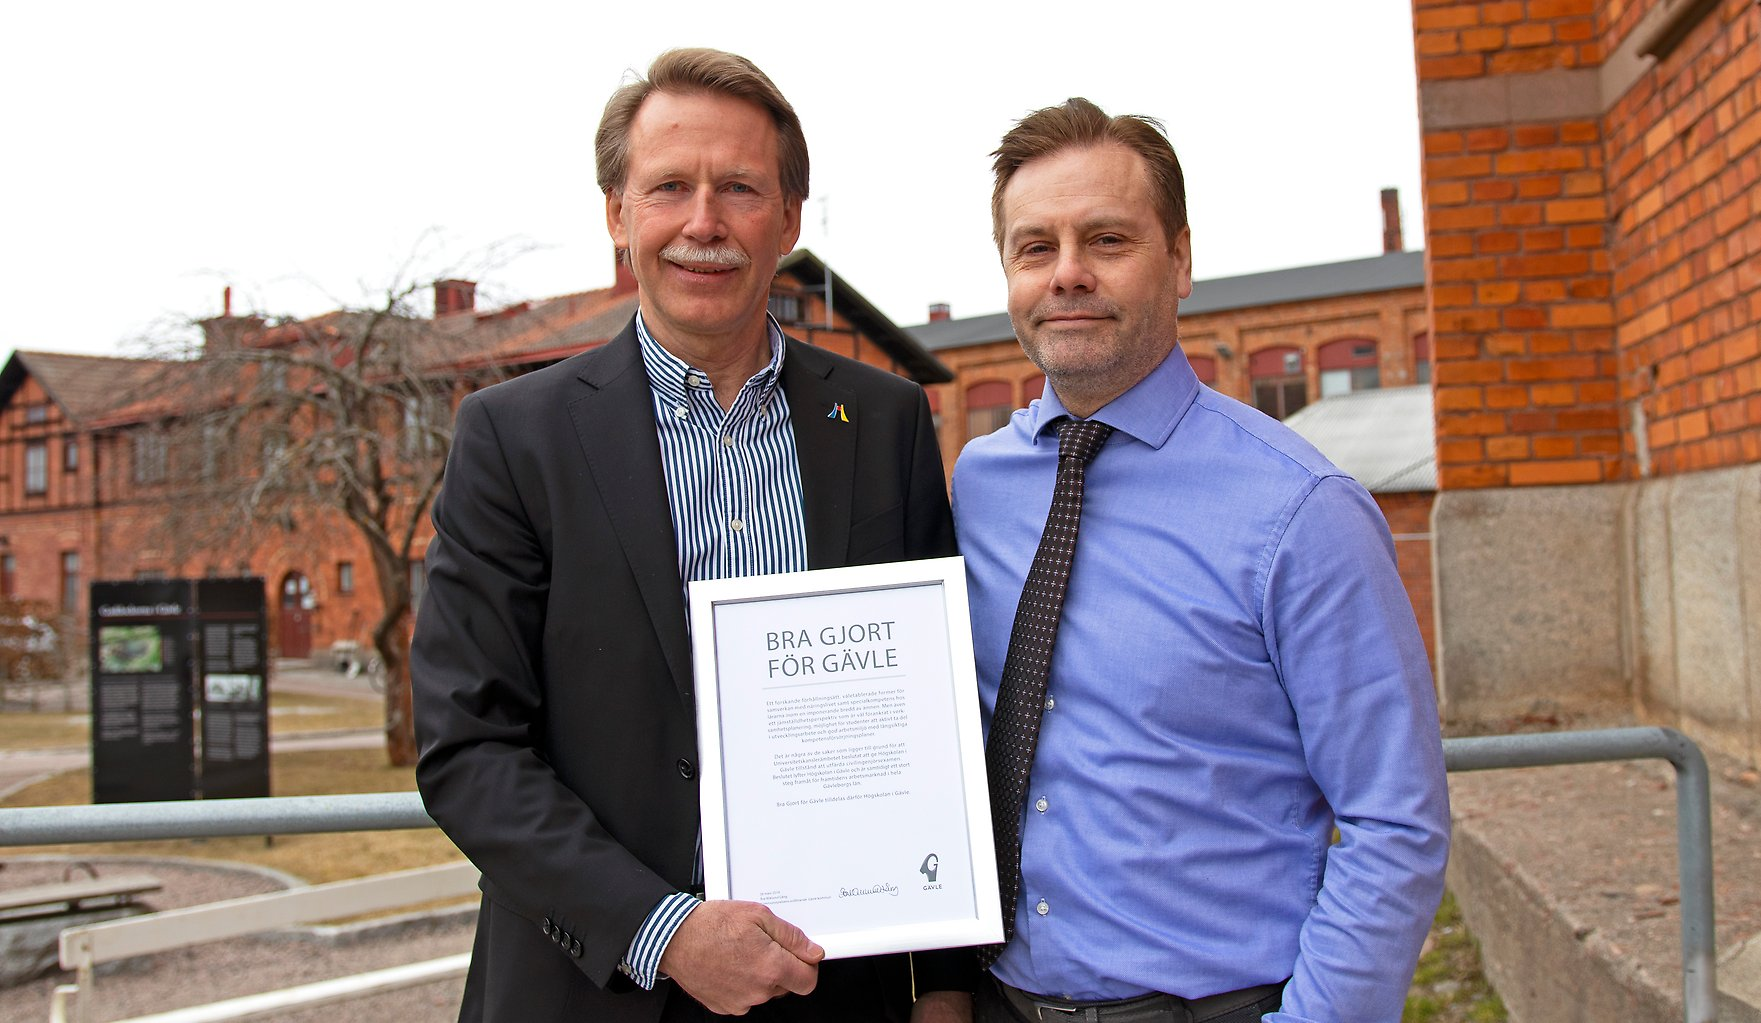 Pro-Vice-Chancellor Lars Bengtsson and Magnus Isaksson, professor in electronics received the prize.